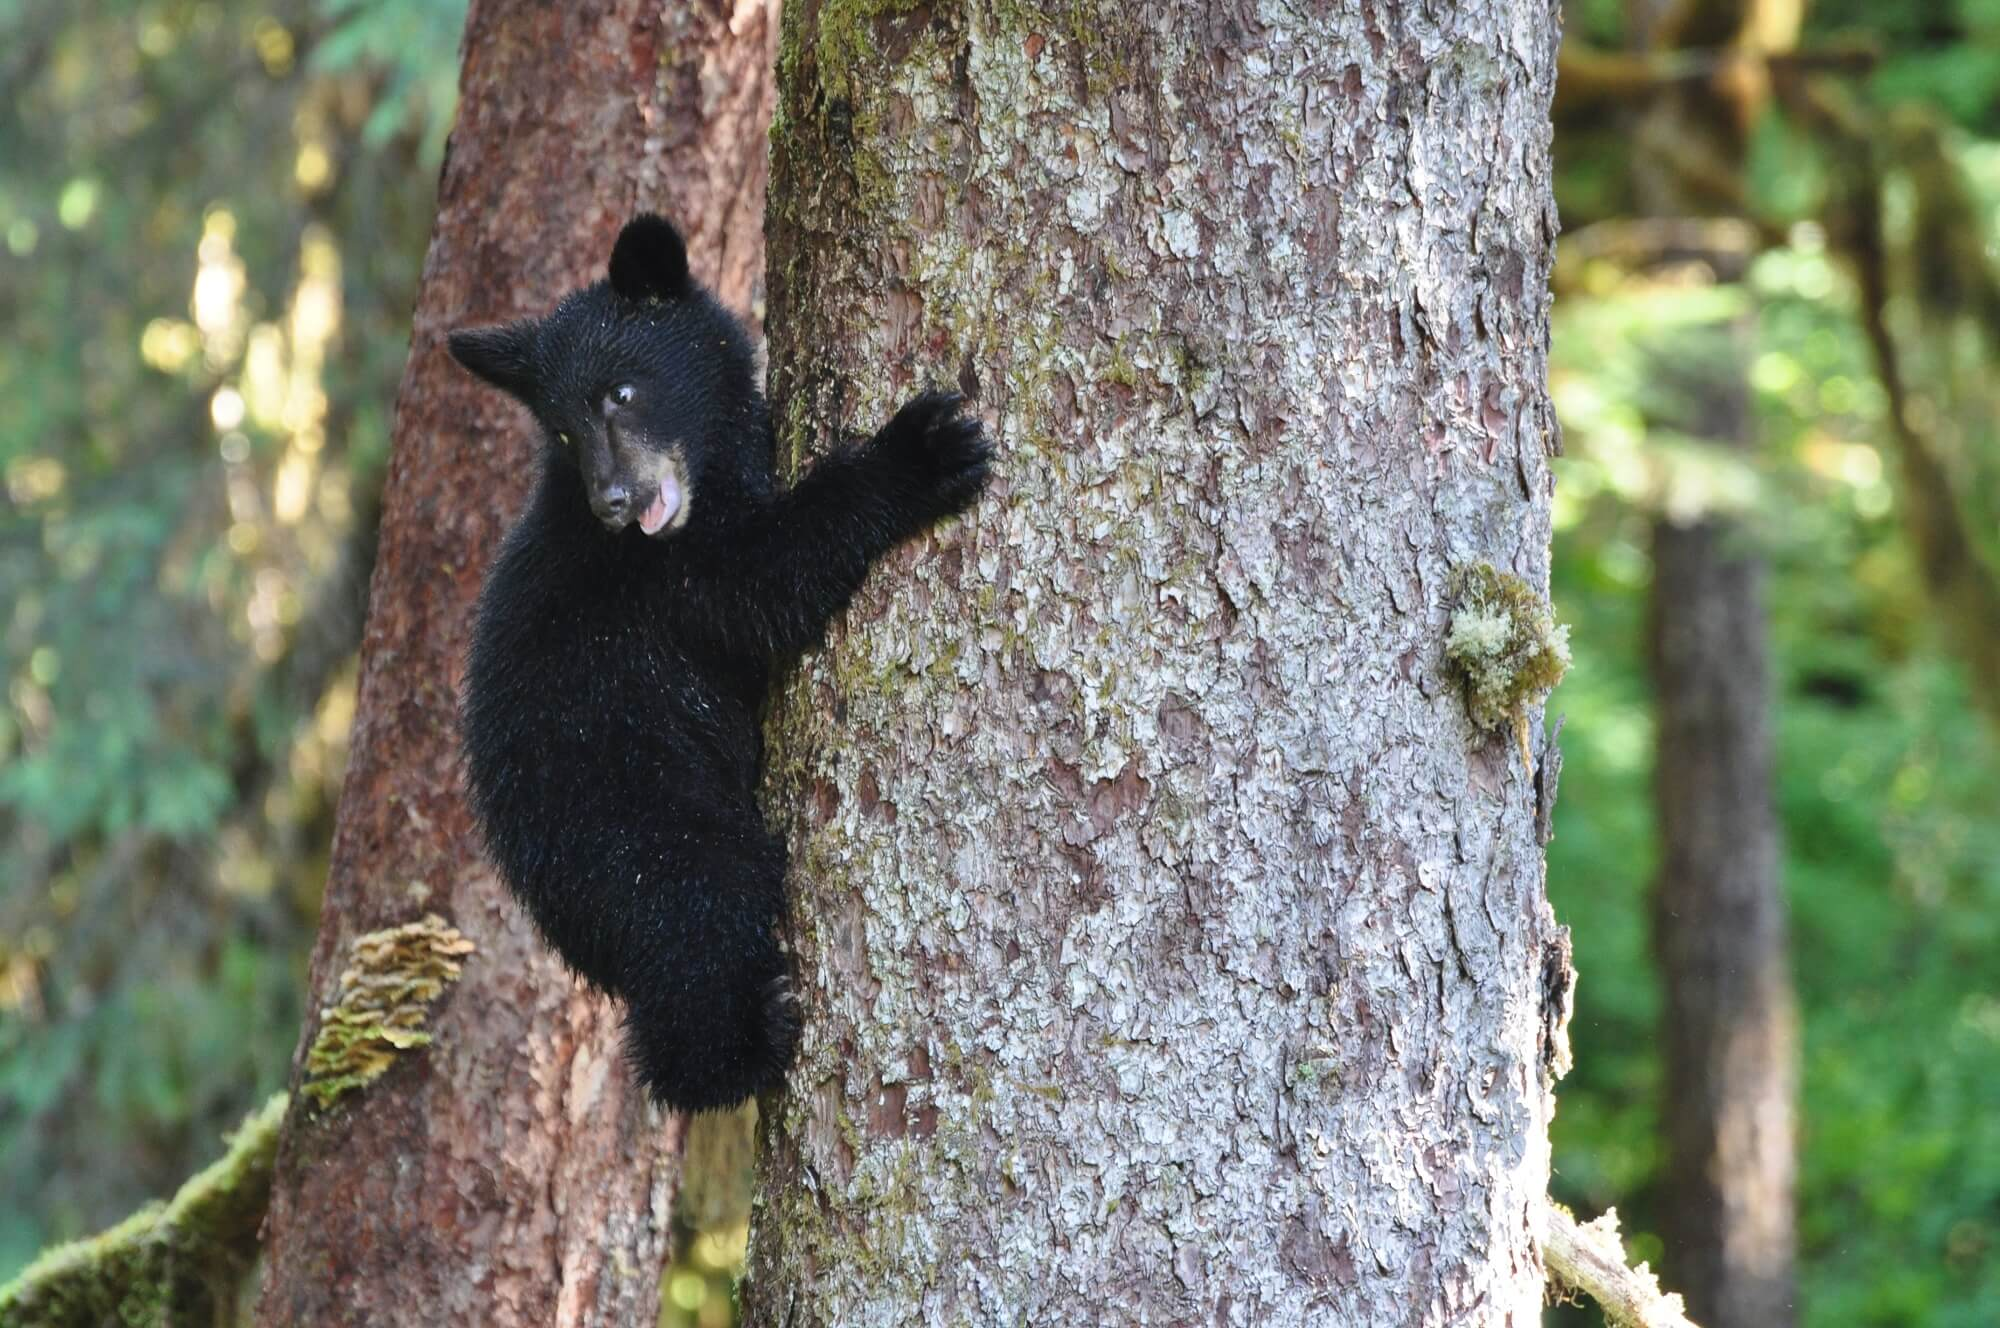 https://taquanair.com/wp-content/uploads/2018/08/Alaska-Bear-cub-in-tree.jpg